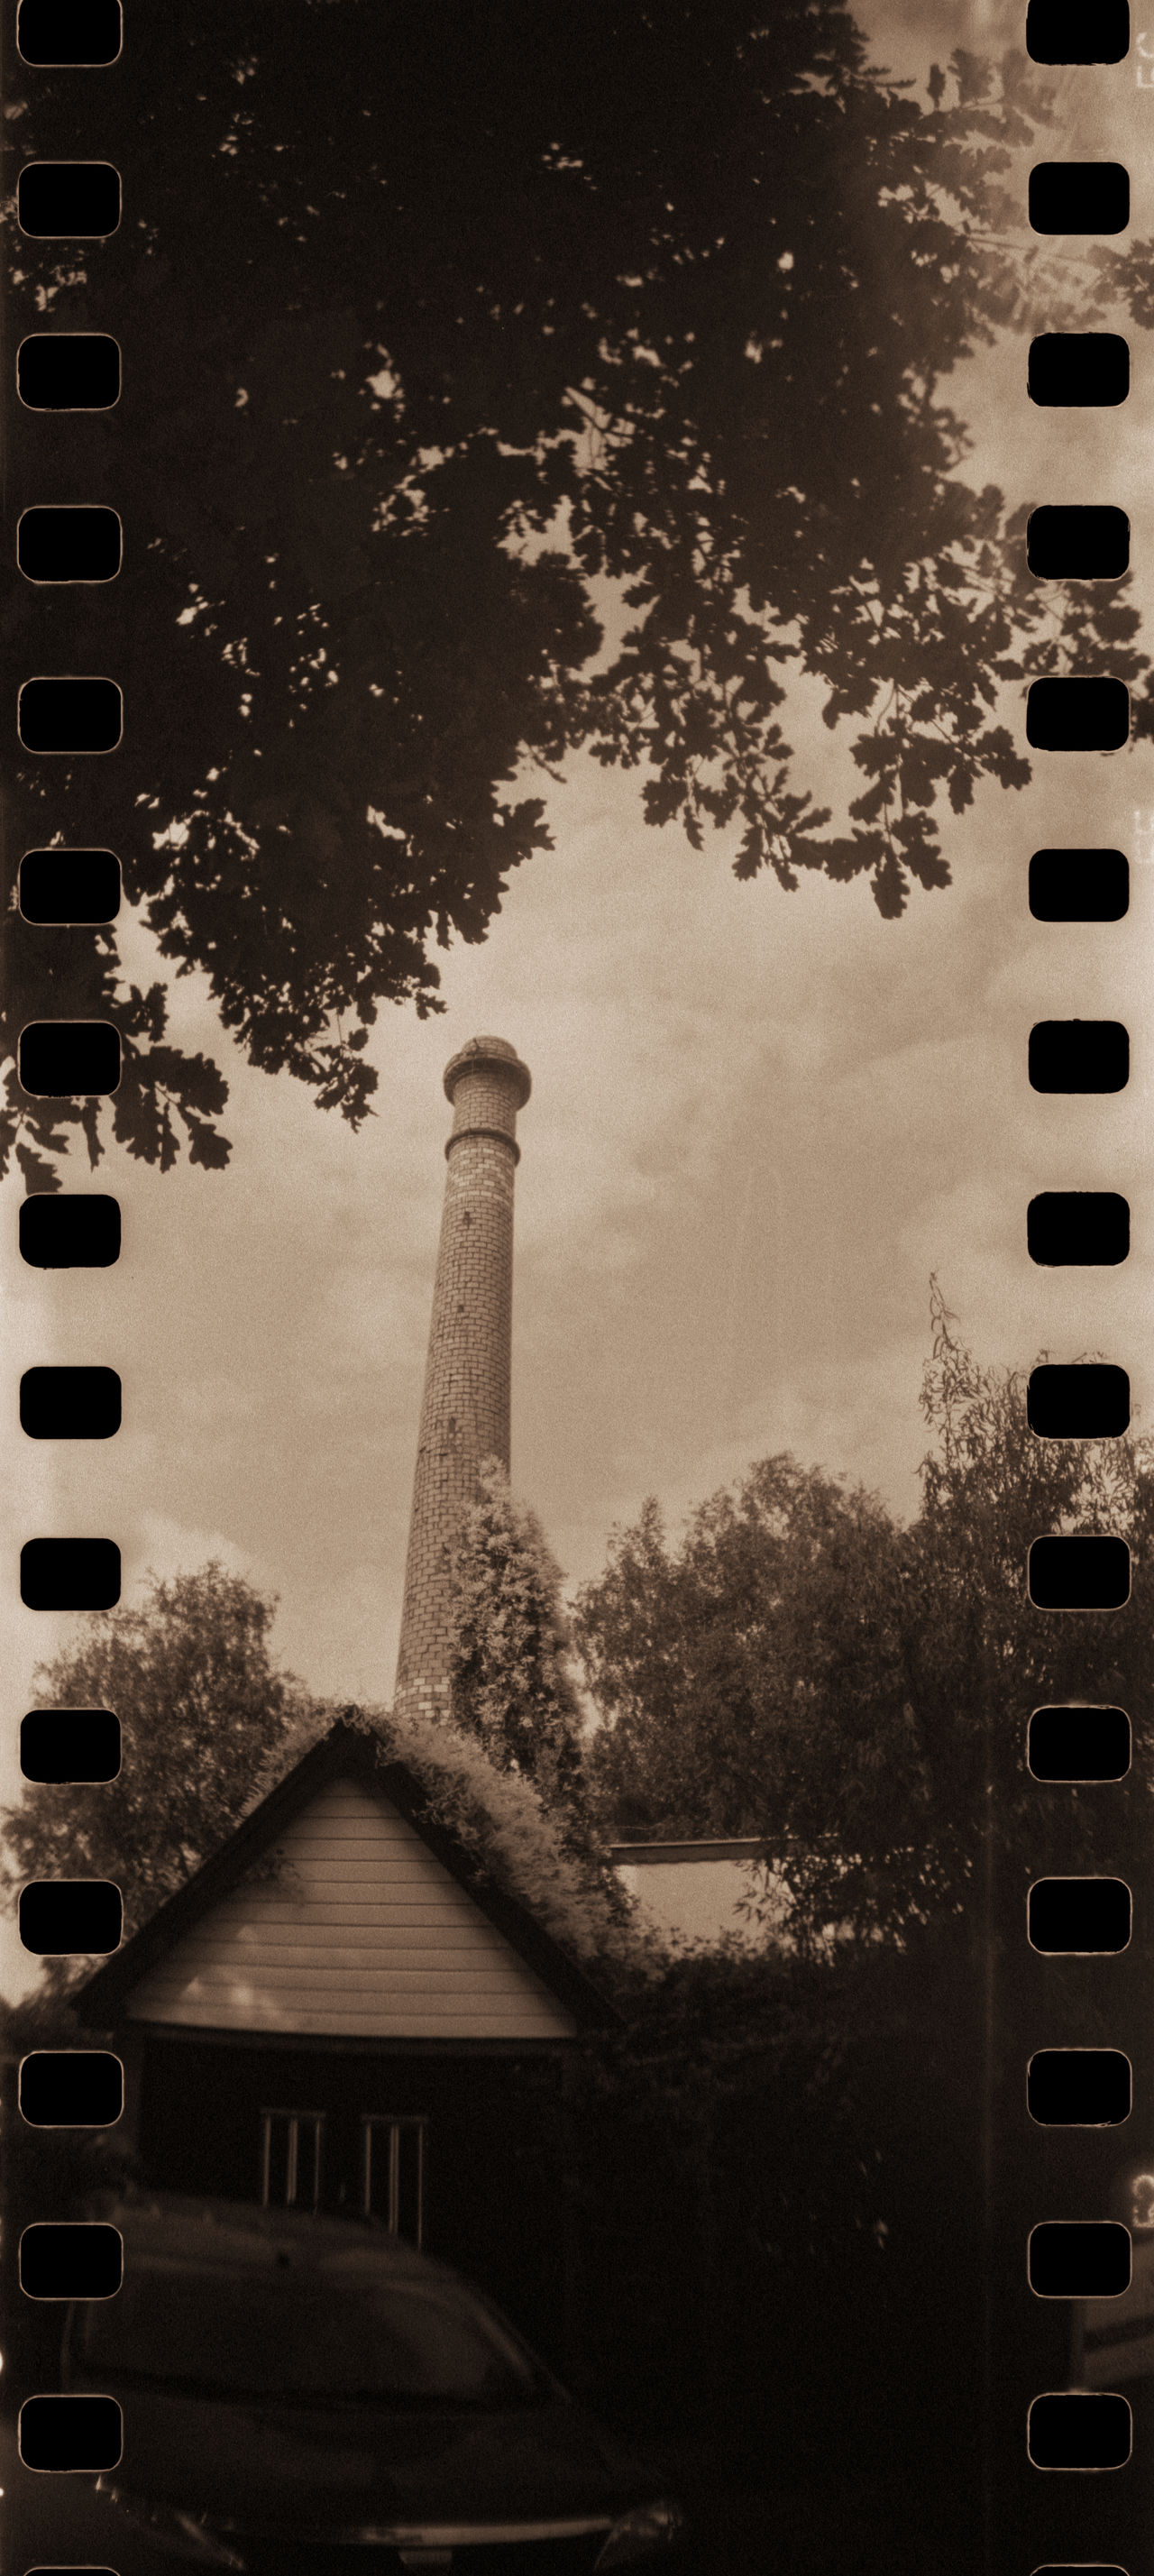 Tall Against the Sky 35mm 35mm Film Analog Black & White Blackandwhite Bricks Brickwork  Car Cloud Factory Film Fomapan400 Historical History House Lomography Masonry Panorama Rodinal Sky Sprocket Sprocket Rocket Panorama Tower Tree Urban